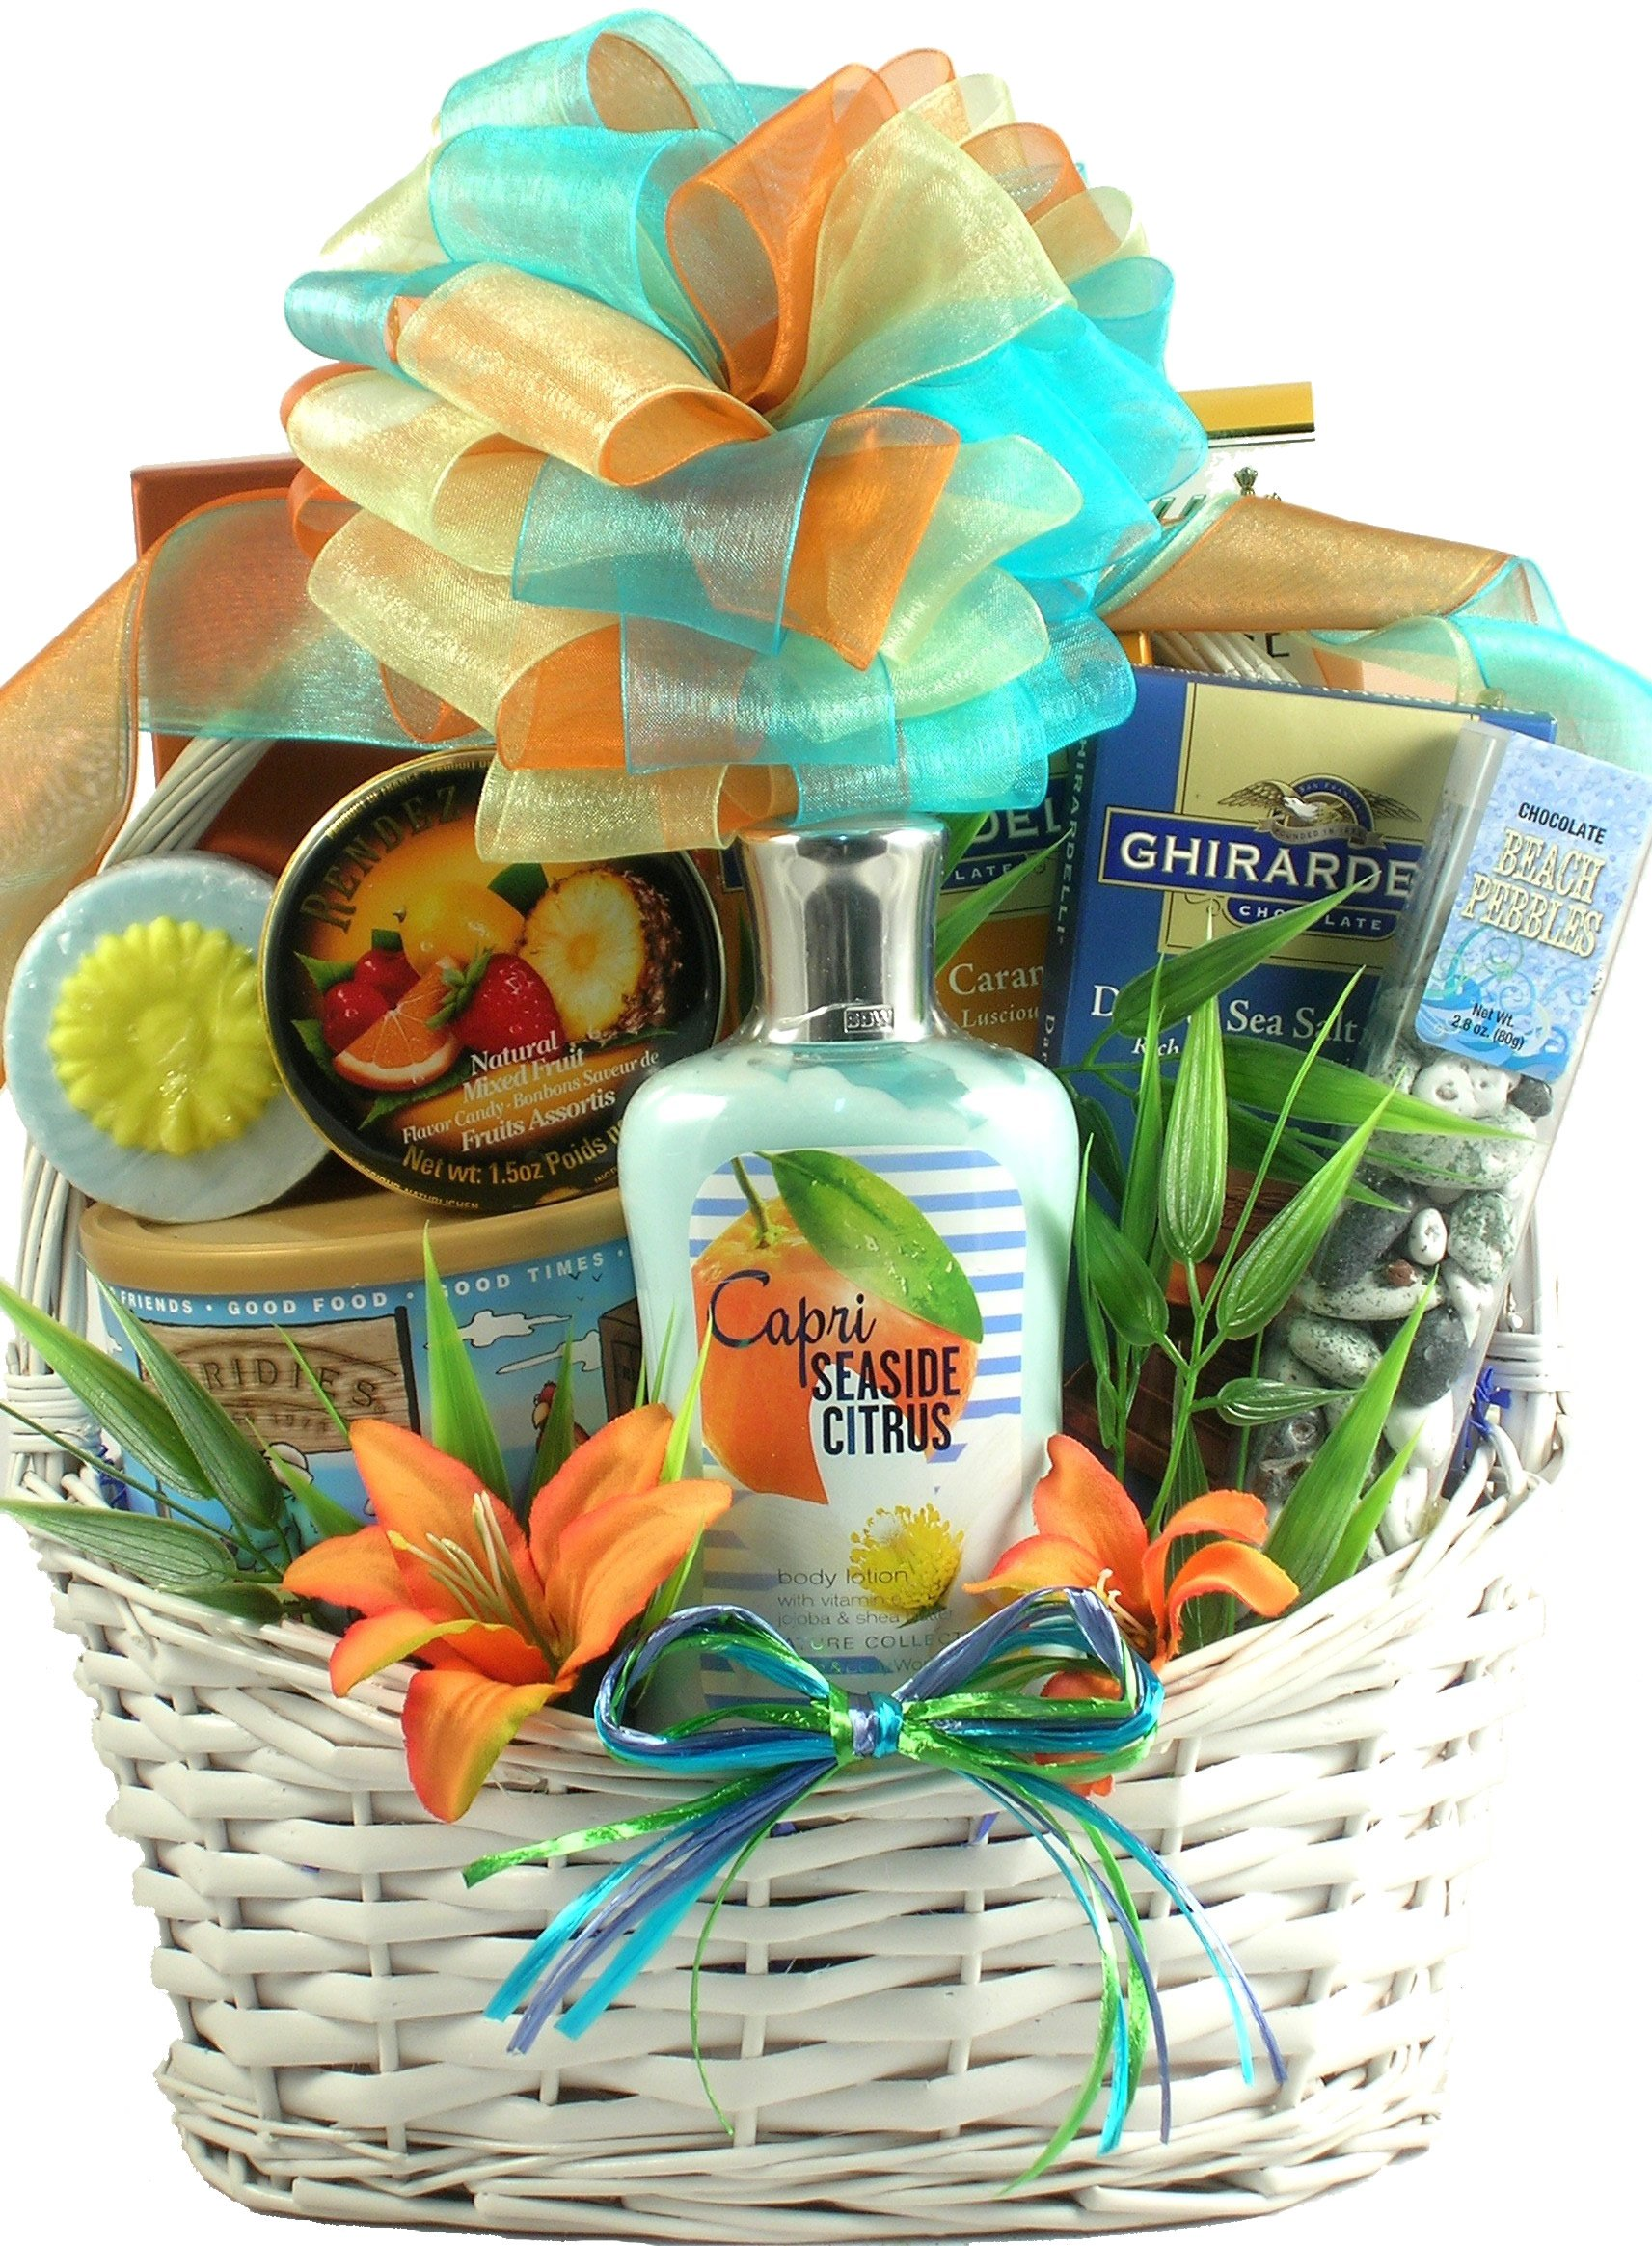 Tropical Scent-sations, Luxurious Tropical Gourmet & Spa Gift Basket For Women To Enjoy, 7 lb